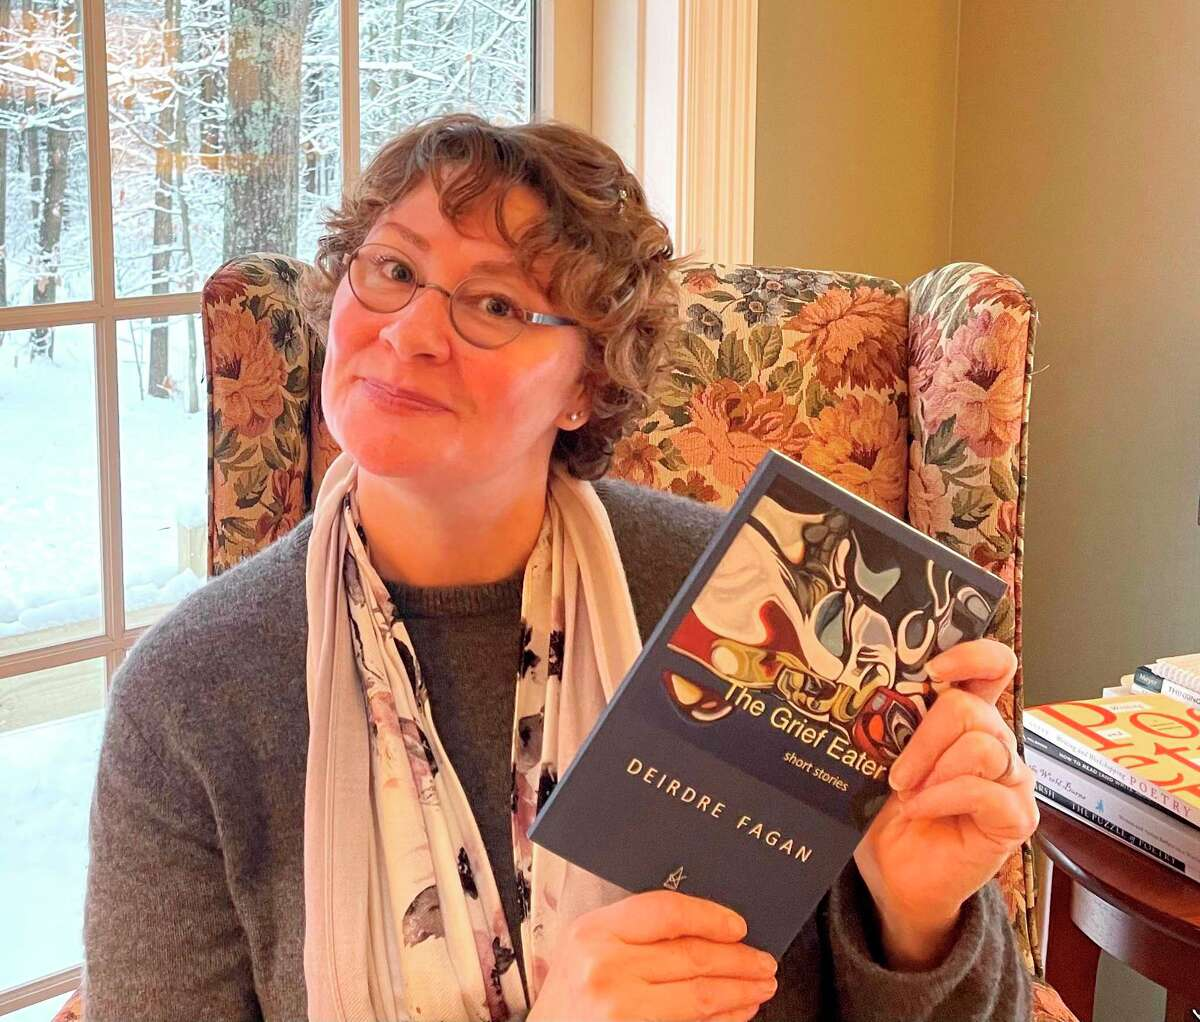 Associate Professor of English, Literature and World Languages Deirdre Fagan, Ferris State University's creative writing coordinator, holds a copy of her latest work,